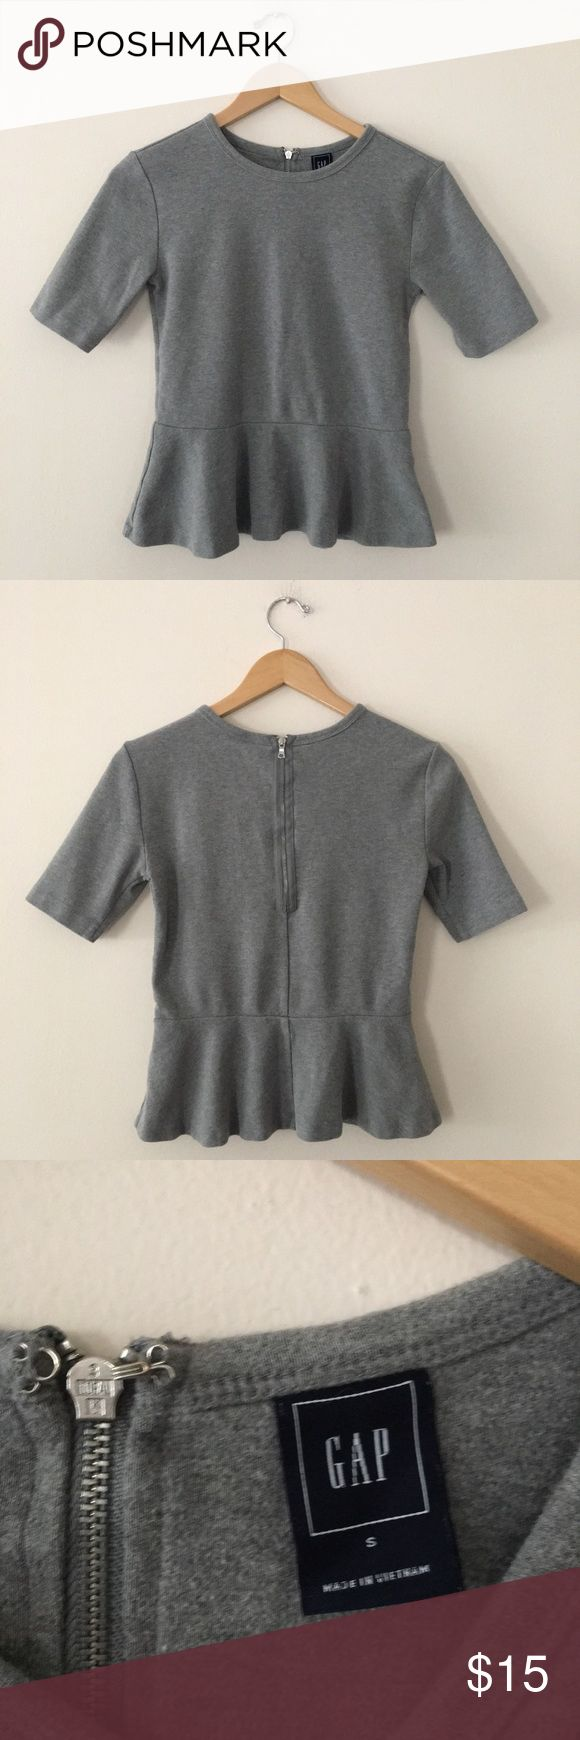 "GAP Cotton Peplum Shirt Gray peplum top with back zipper. Sleeves are longer than average T-Shirt sleeves and shorter than elbow sleeves. They hit right at the middle. 100% cotton. Length: 20.5"" Armpit to Armpit: 20.5"" GAP Tops Tees - Short Sleeve"